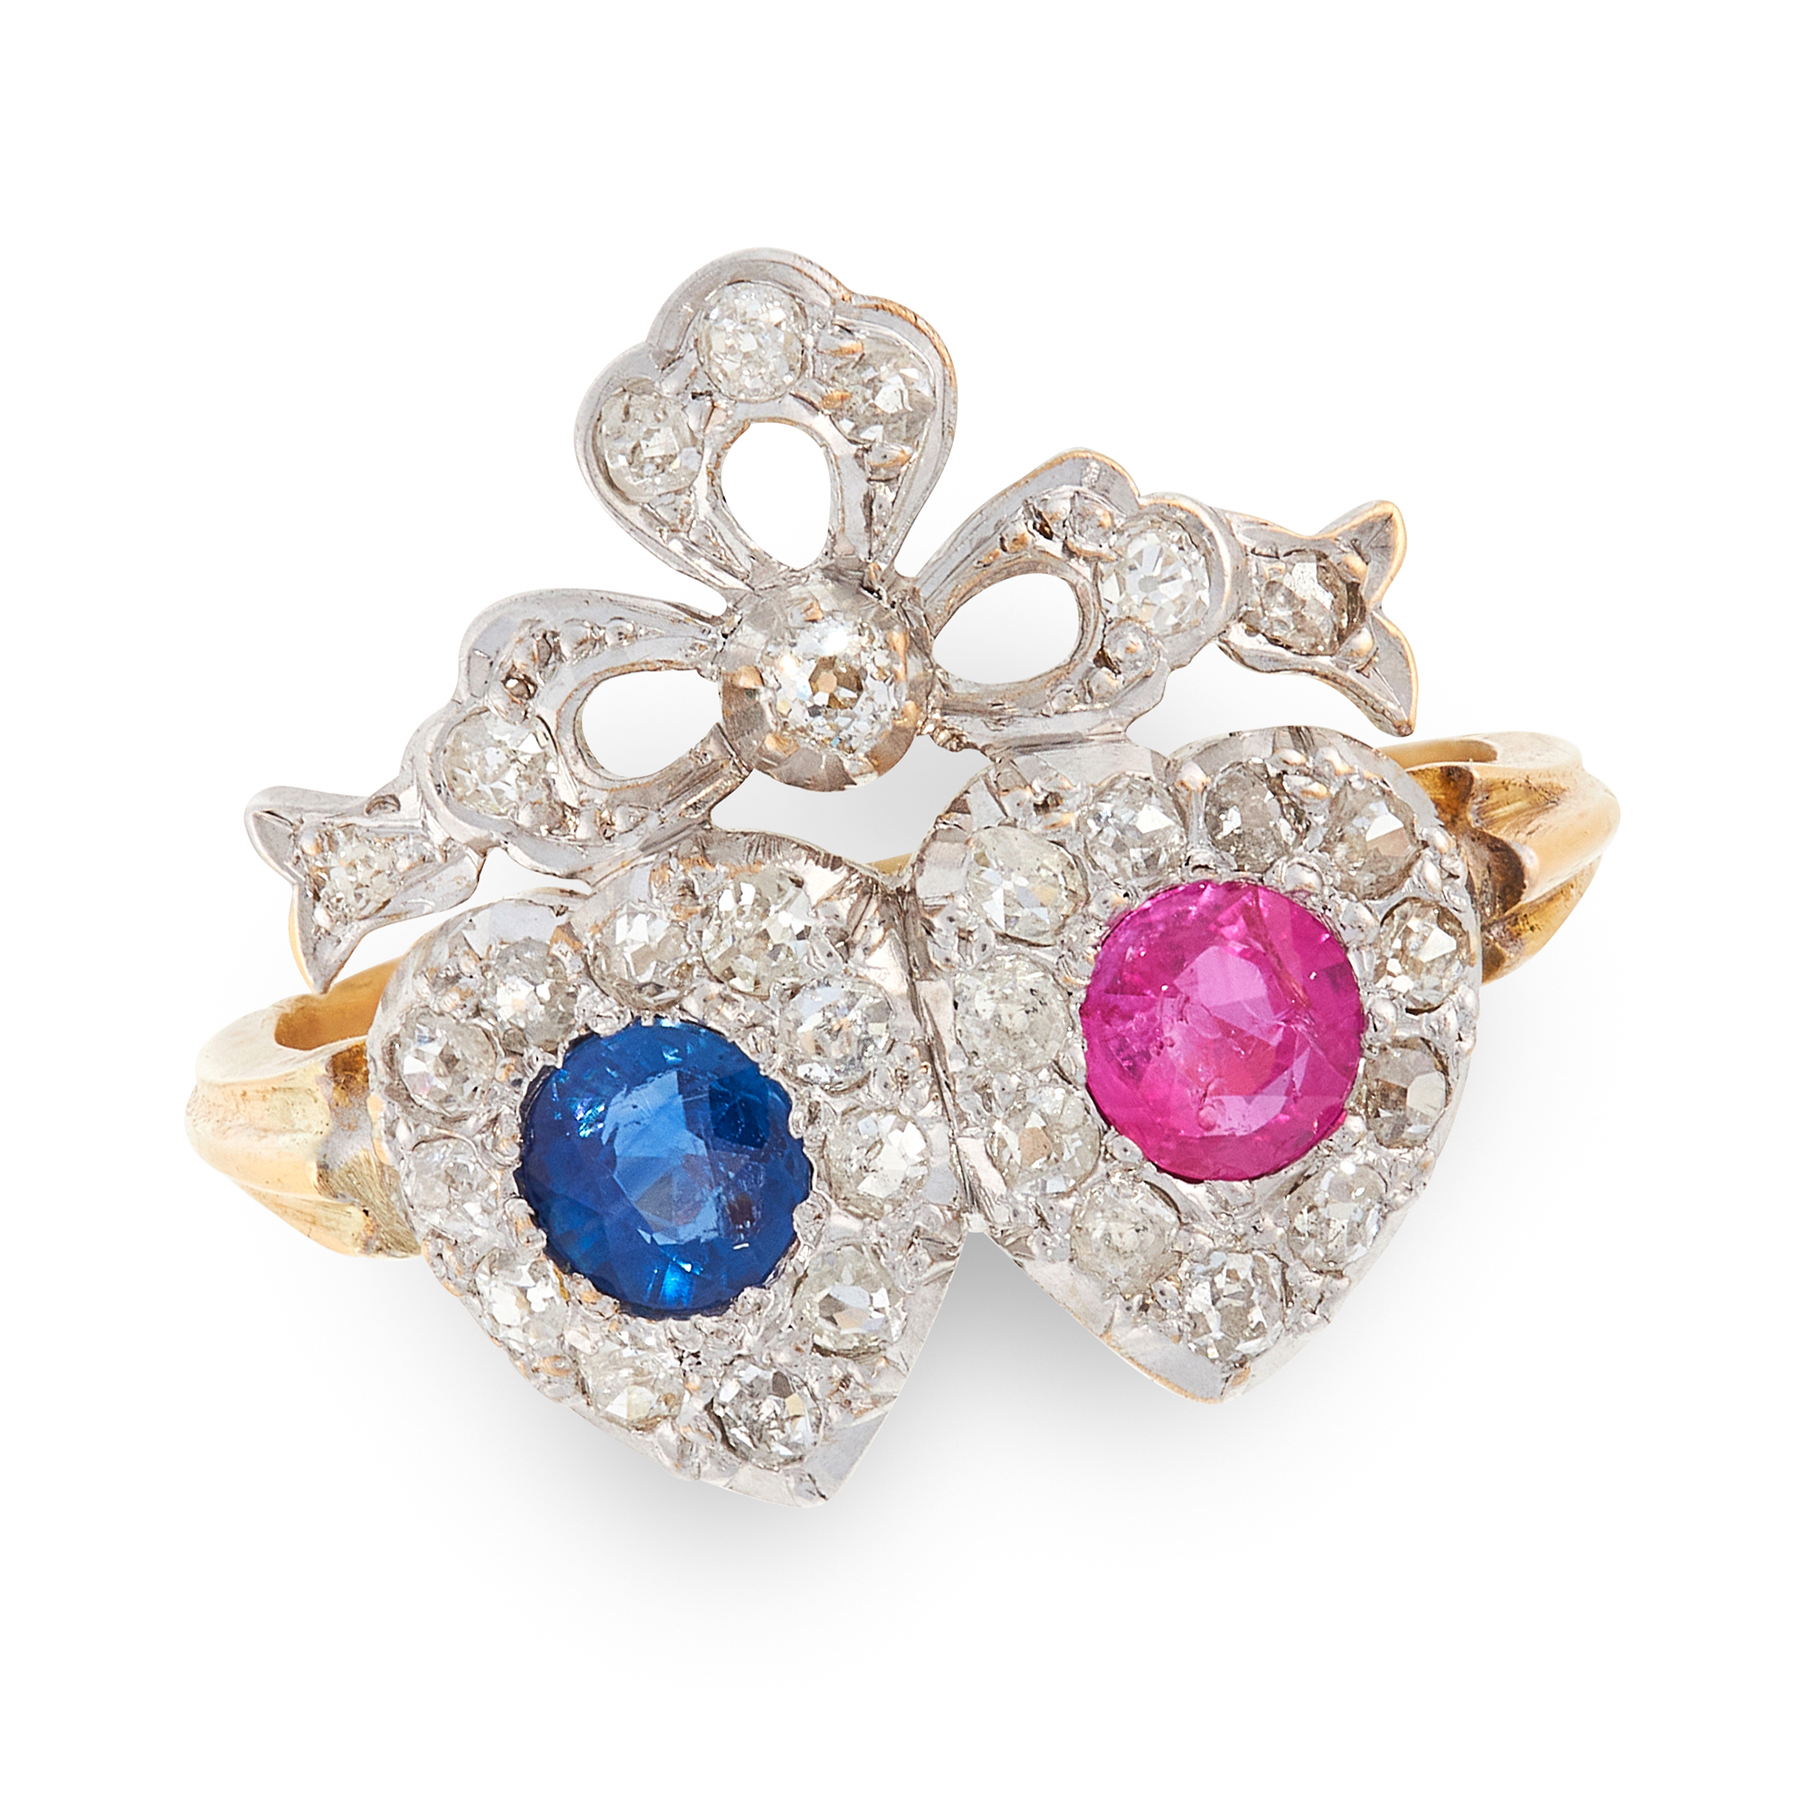 A SAPPHIRE, RUBY AND DIAMOND SWEETHEART RING in 18ct yellow gold and silver, in ribbon and heart